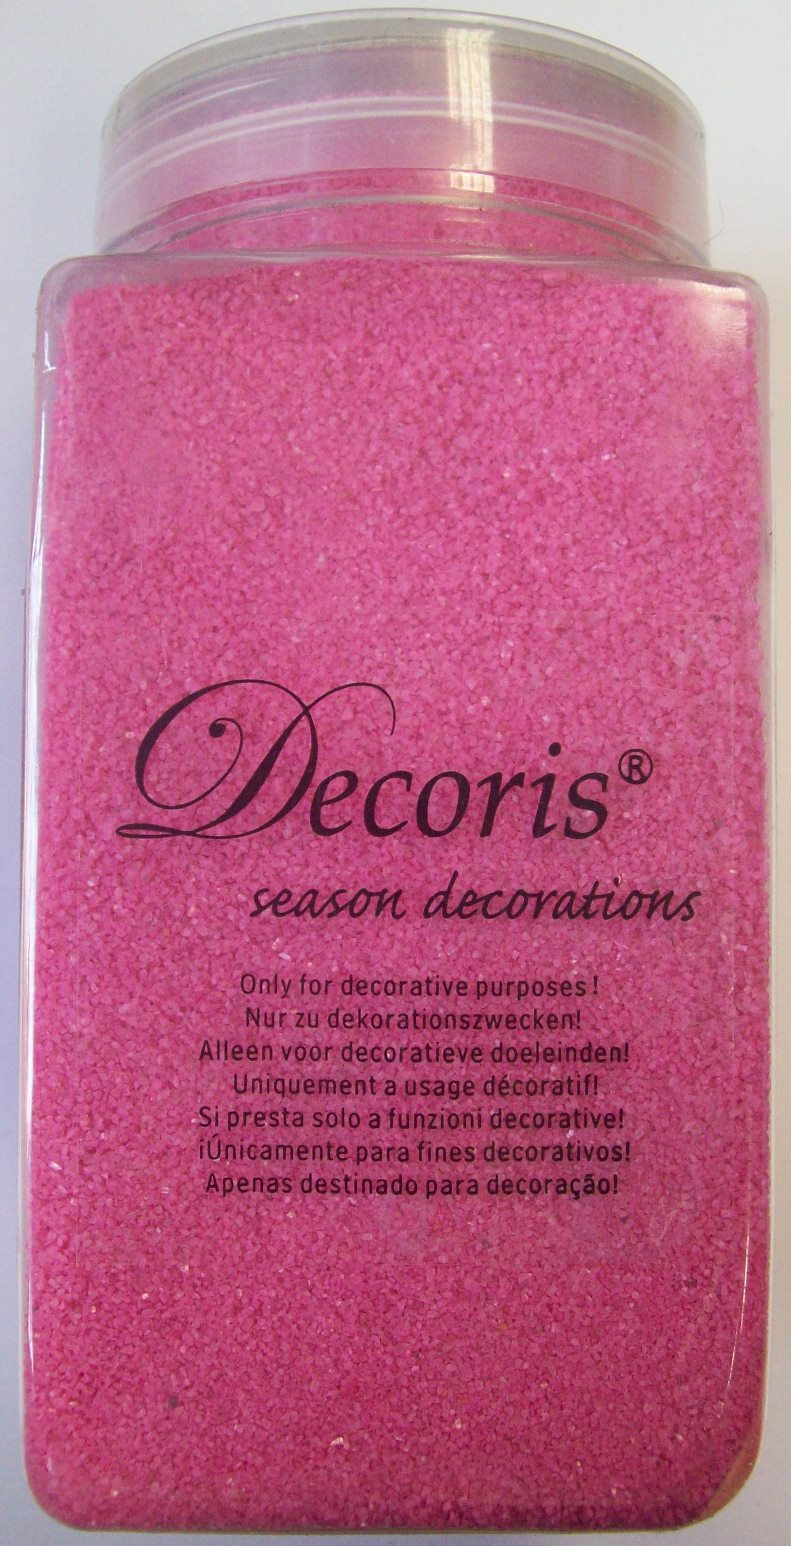 finest selection 02021 dc2c9 Details about Decoris season decorations 500g tub of Pink decorative Sand -  Art sand